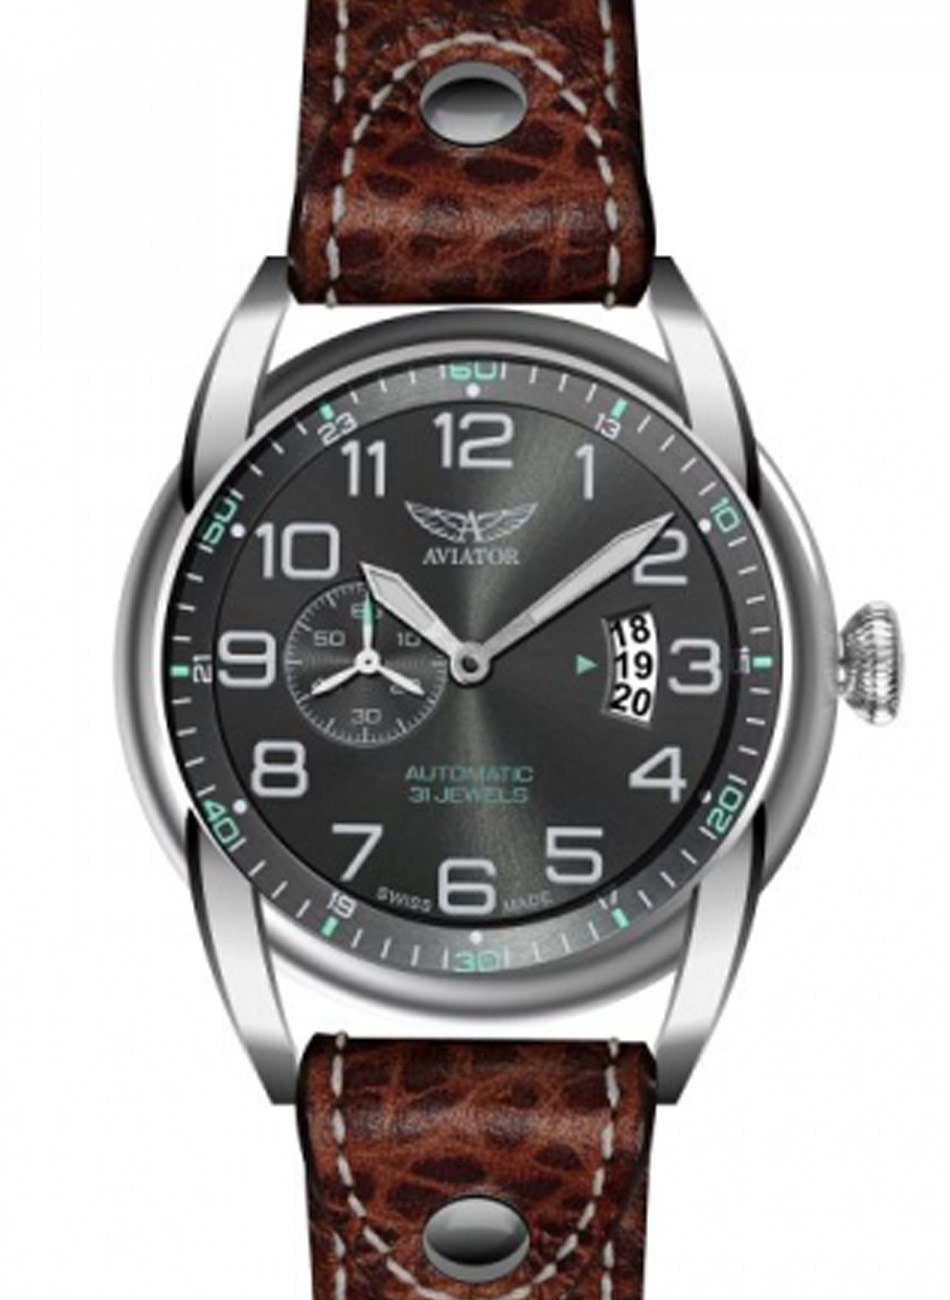 Aviator Swiss Made BRISTOL BULLDOG V.3.18.0.099.4